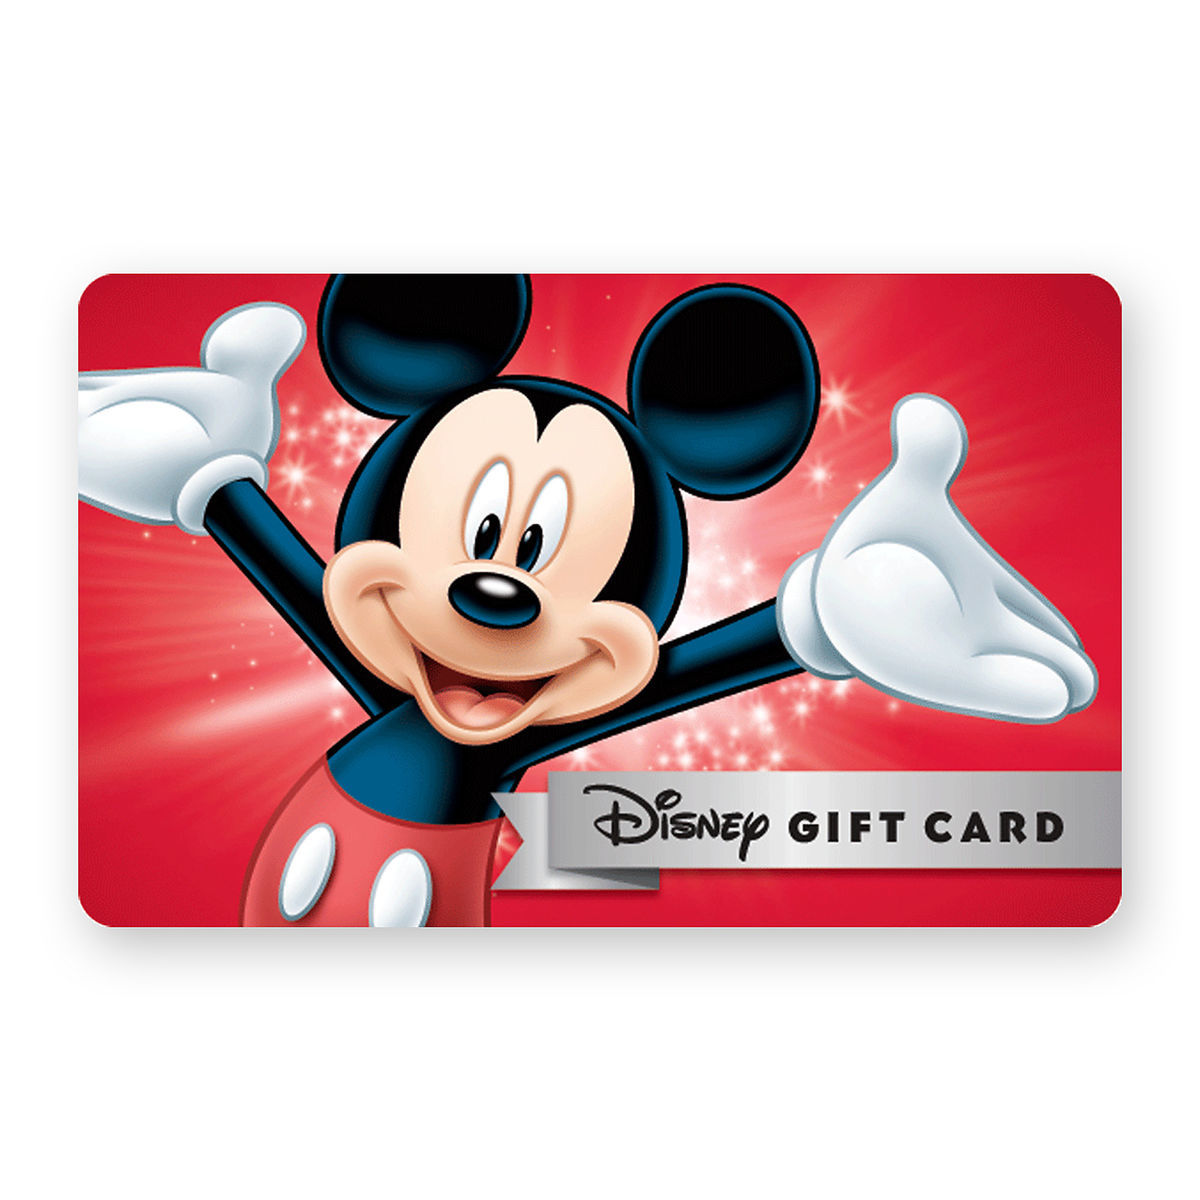 Disney Store Gift Card Giveaway